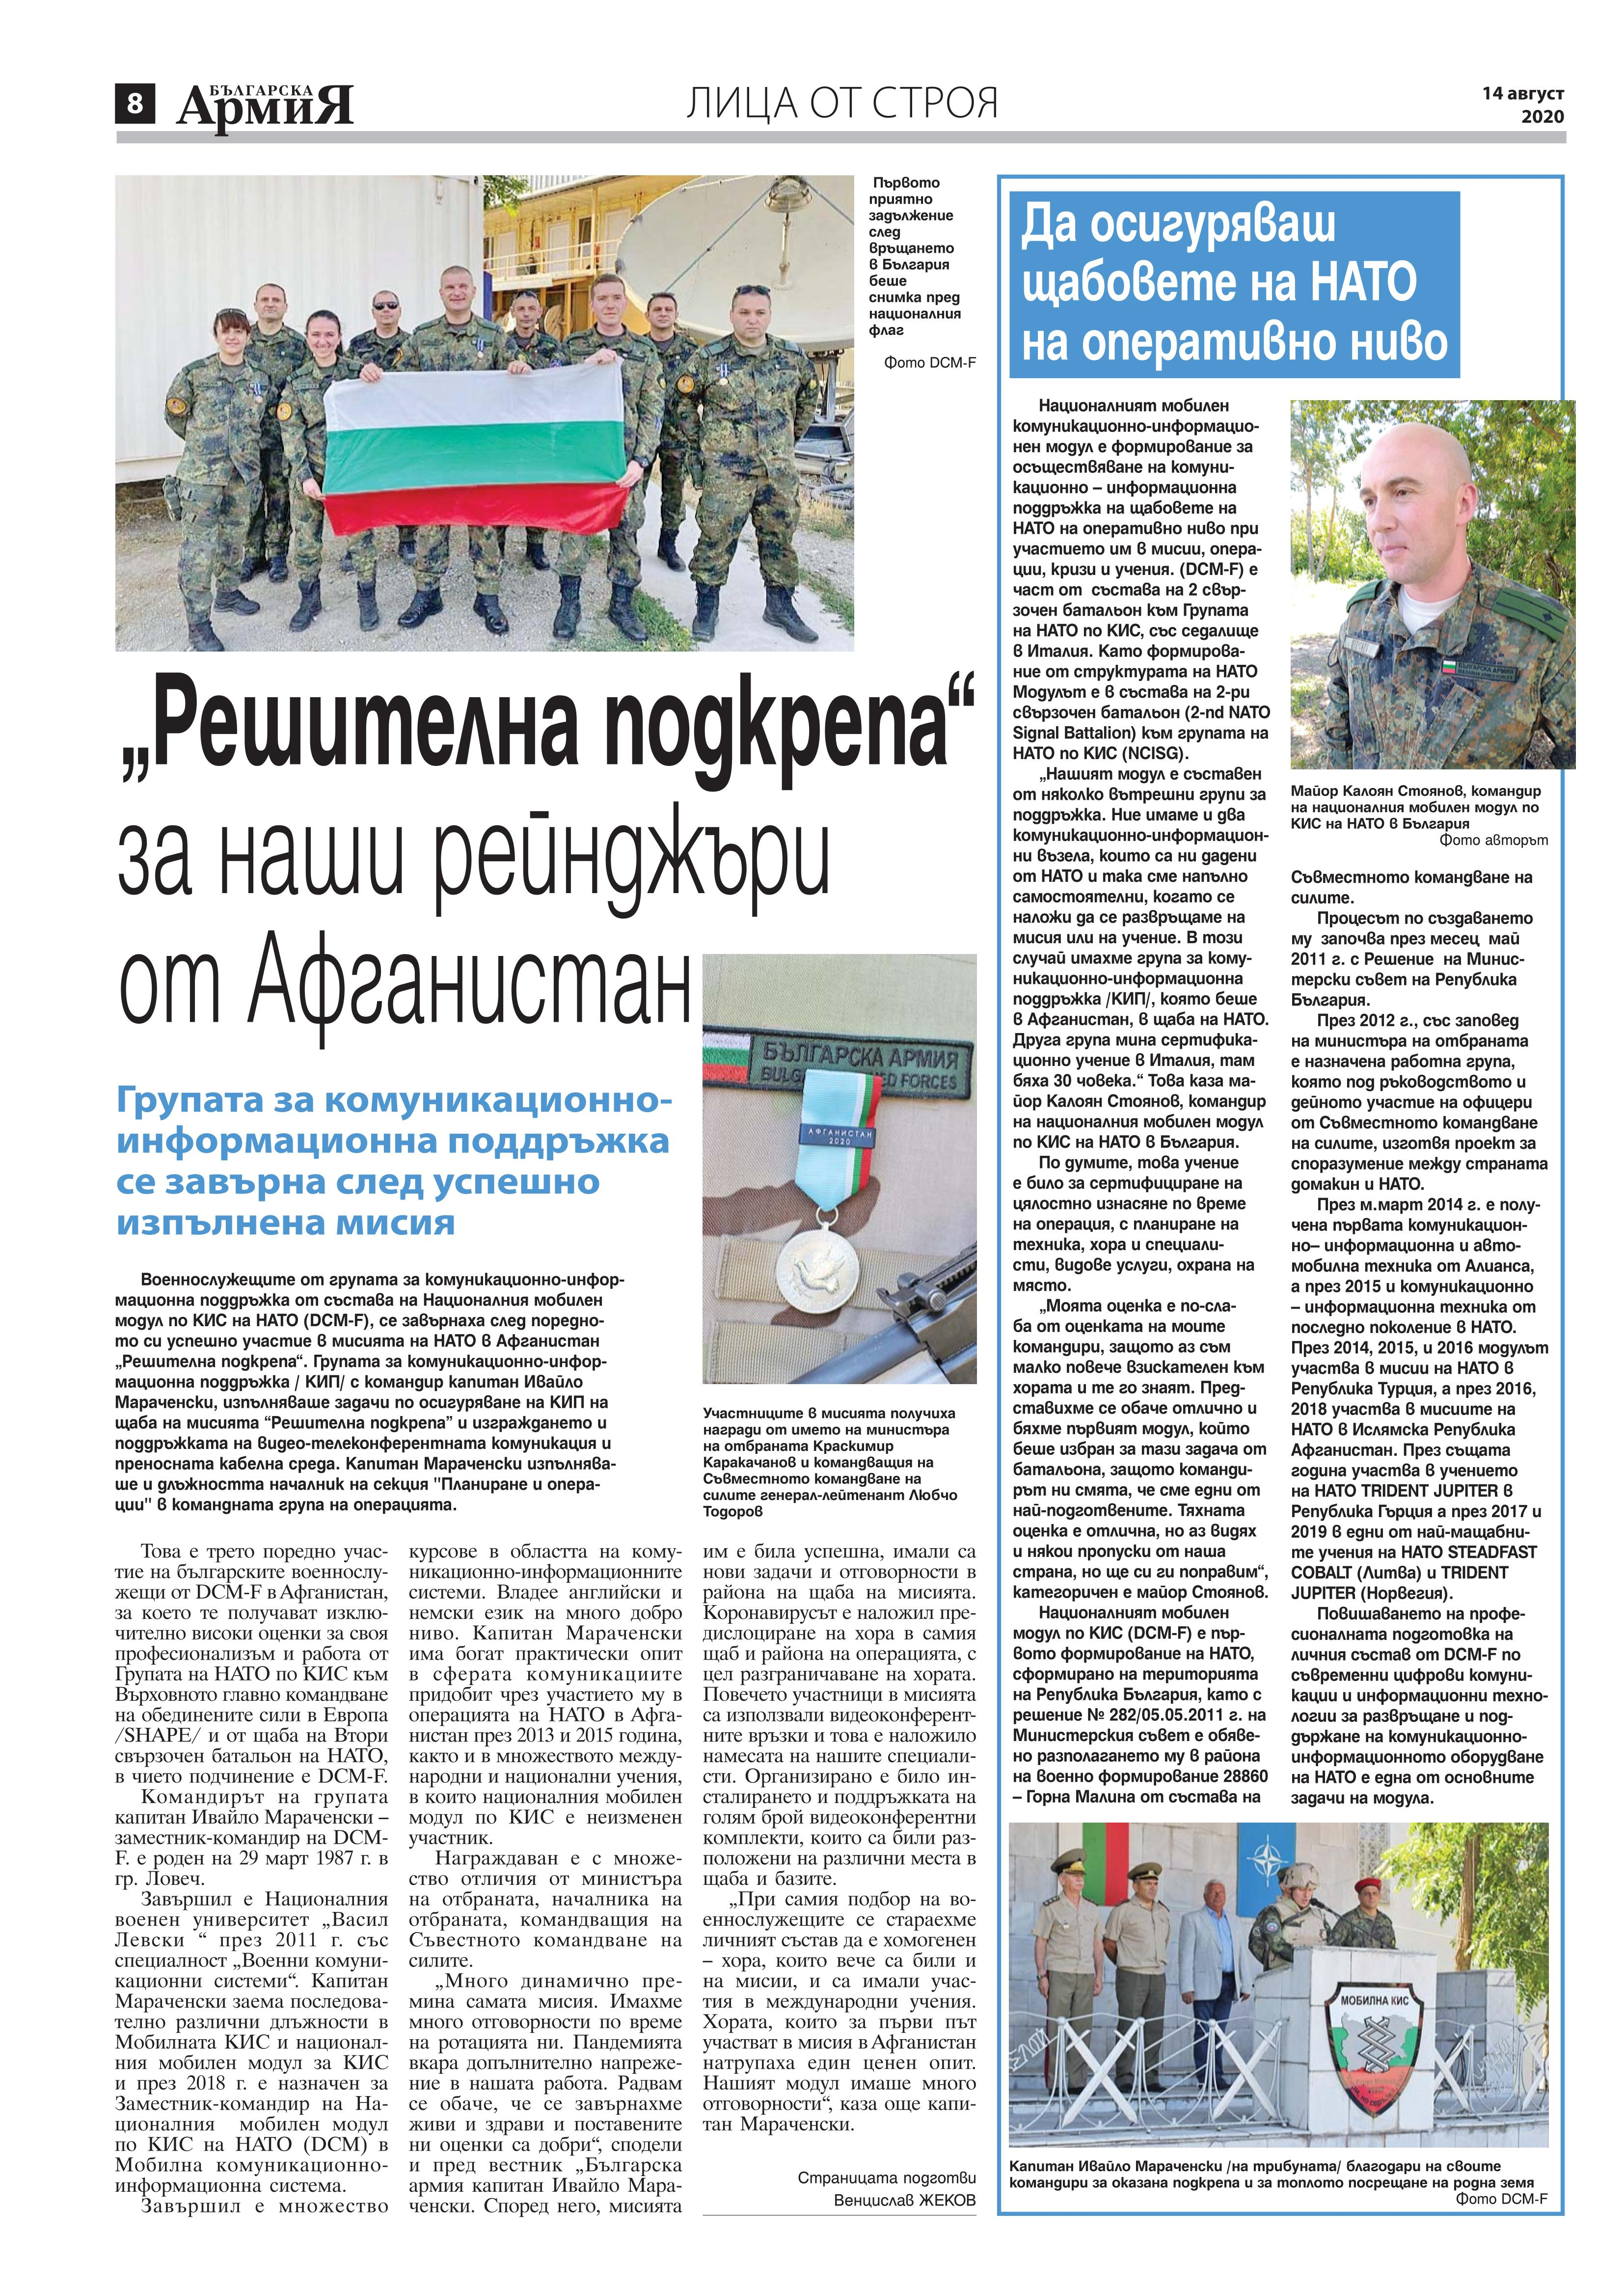 https://armymedia.bg/wp-content/uploads/2015/06/08.page1_-147.jpg